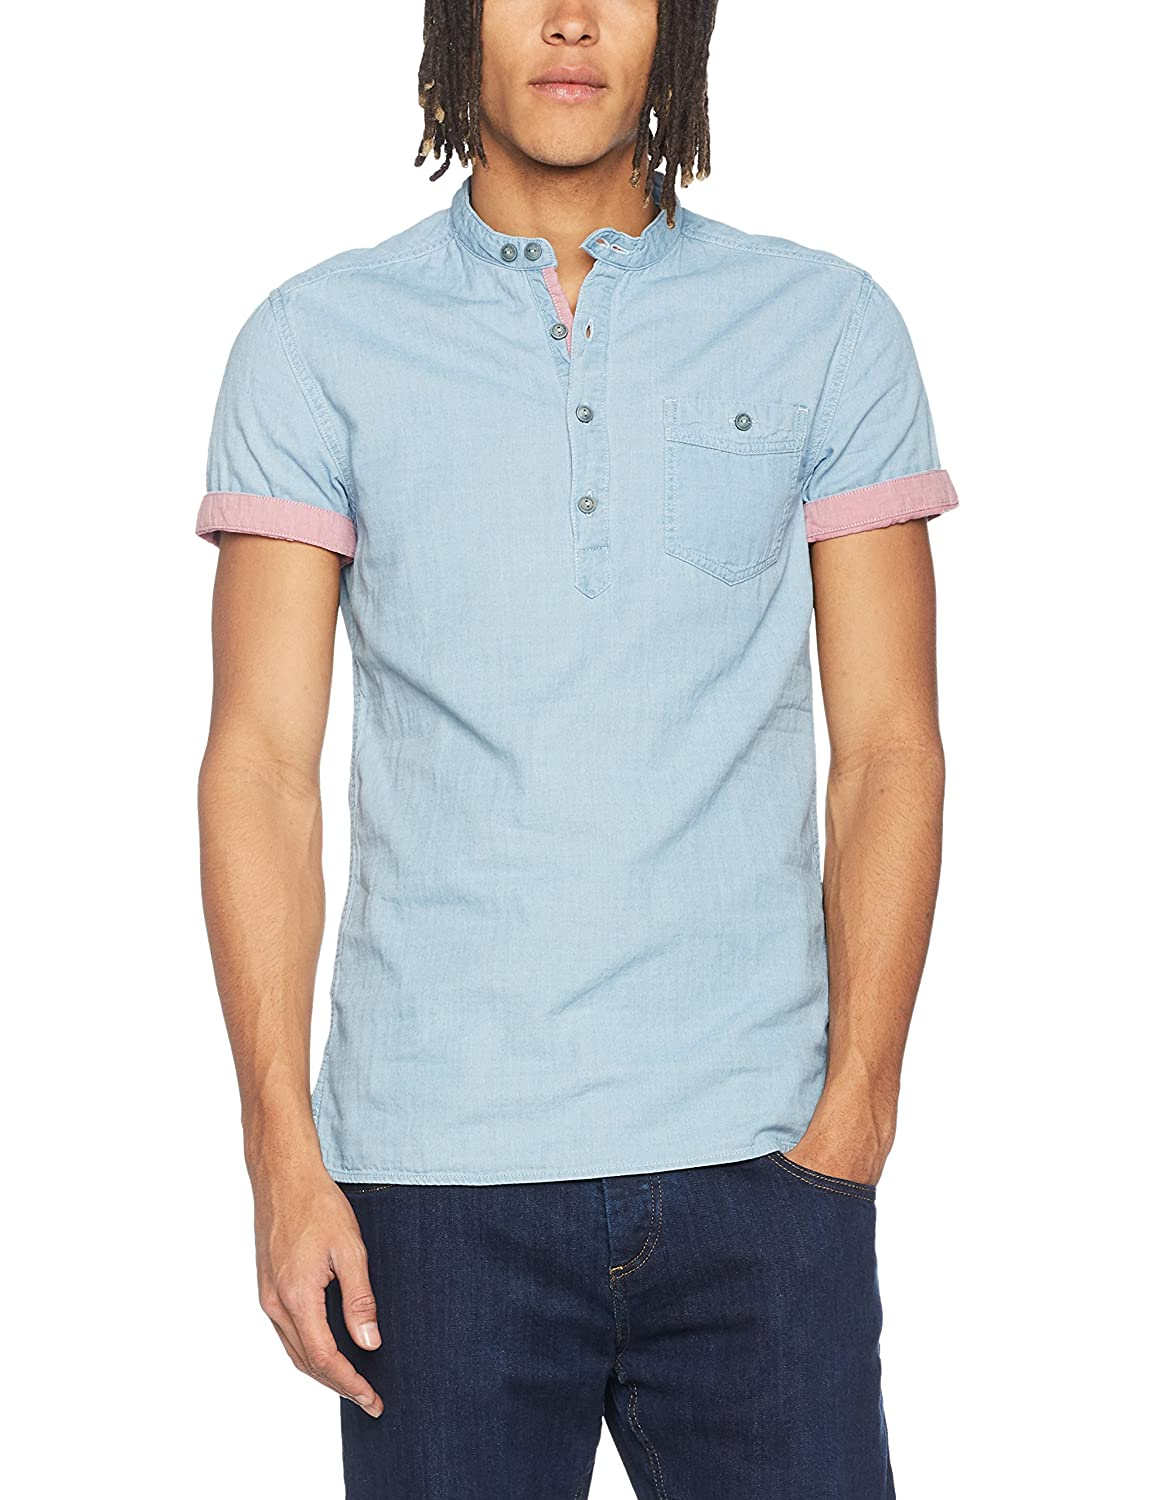 Bonobo POLOGAZH Camisa, Azul (Bleached Chemise Casual), L para ...